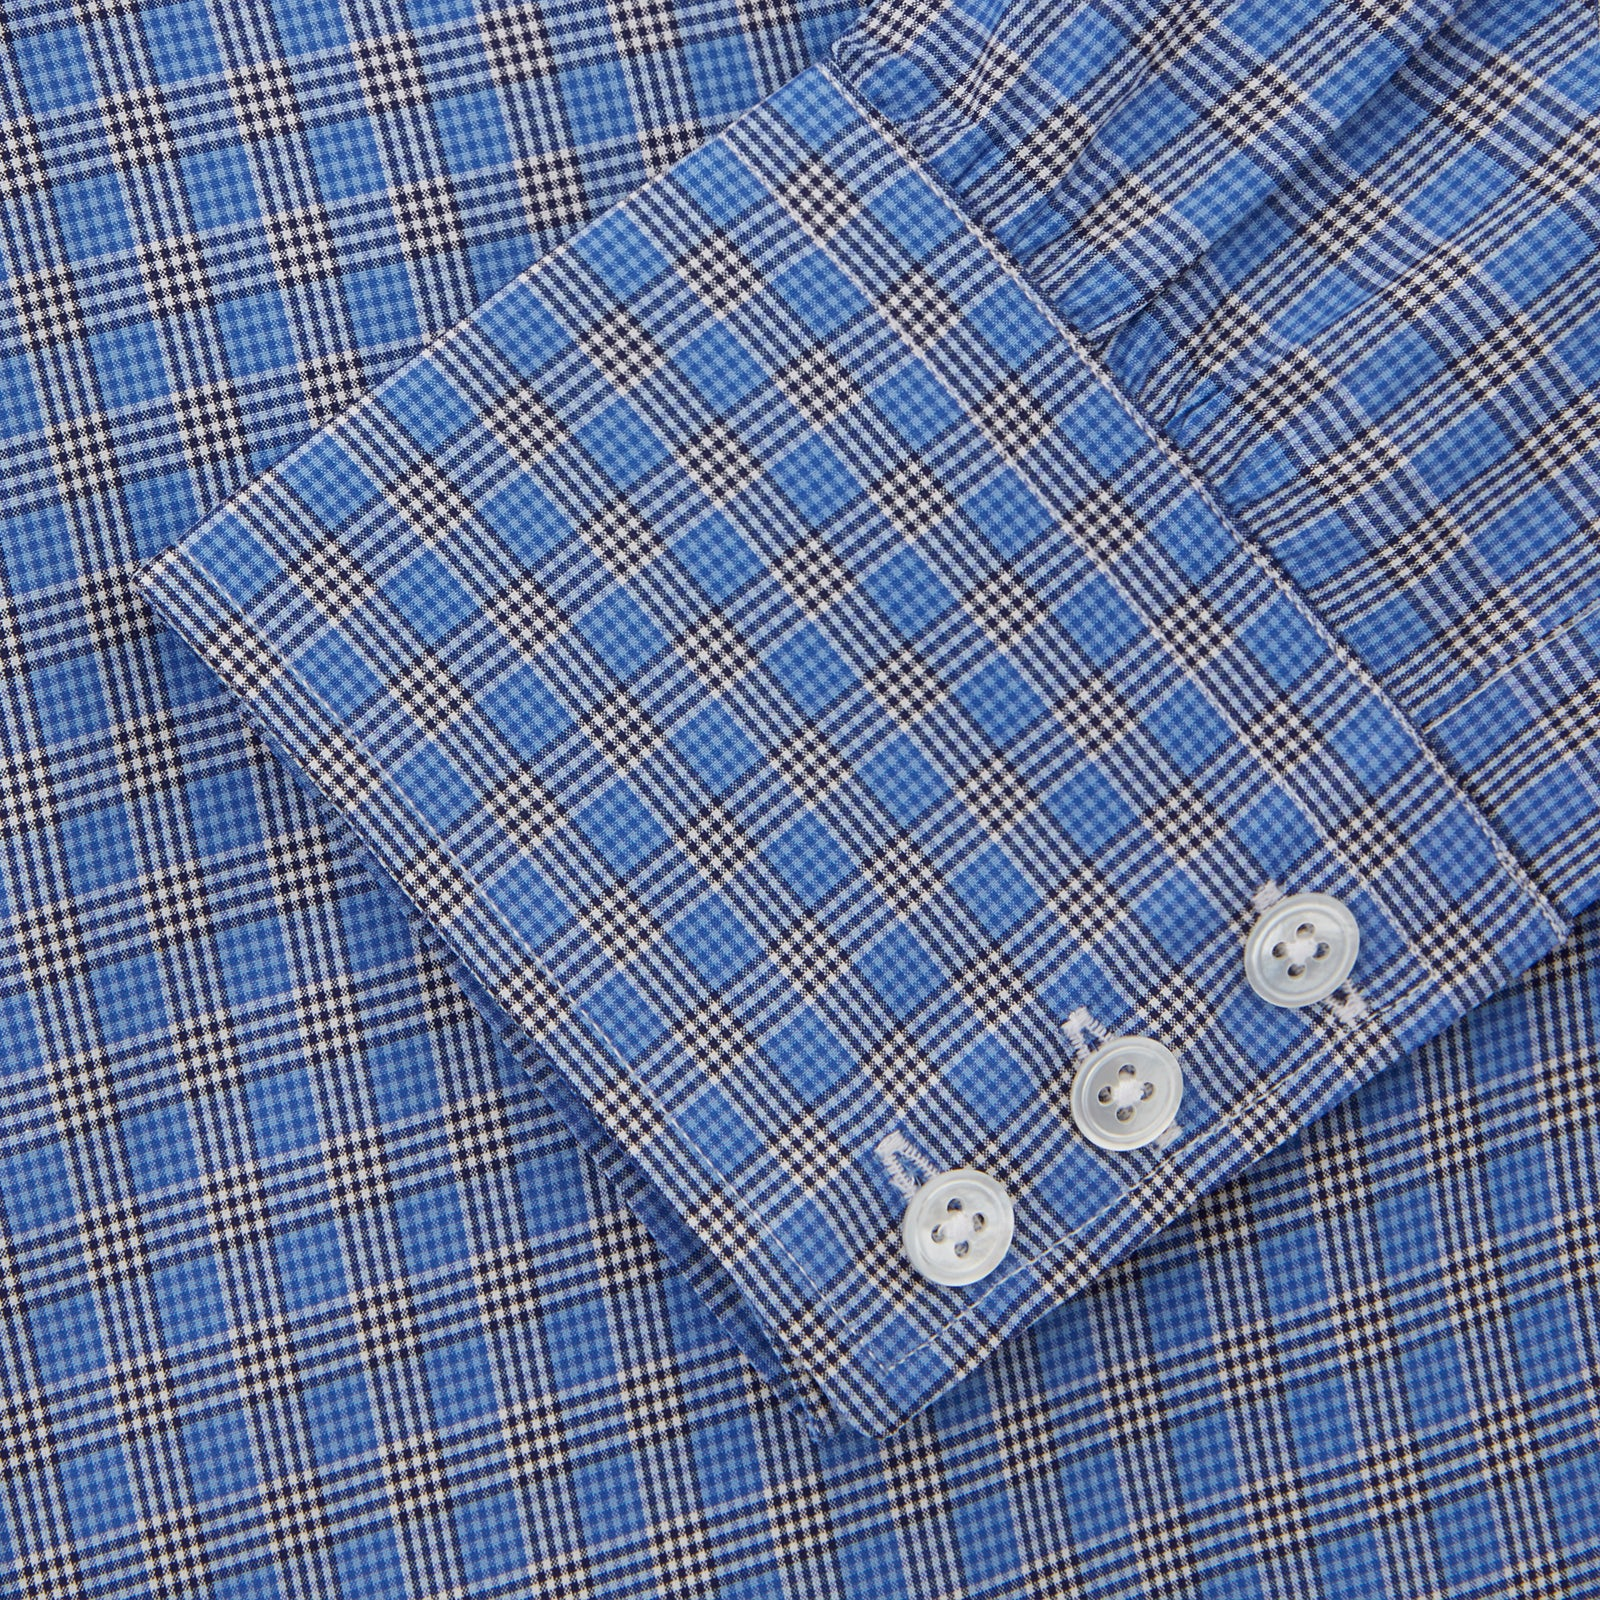 Blue and Black Multi Micro Gingham Cotton Shirt with Classic T&A Collar